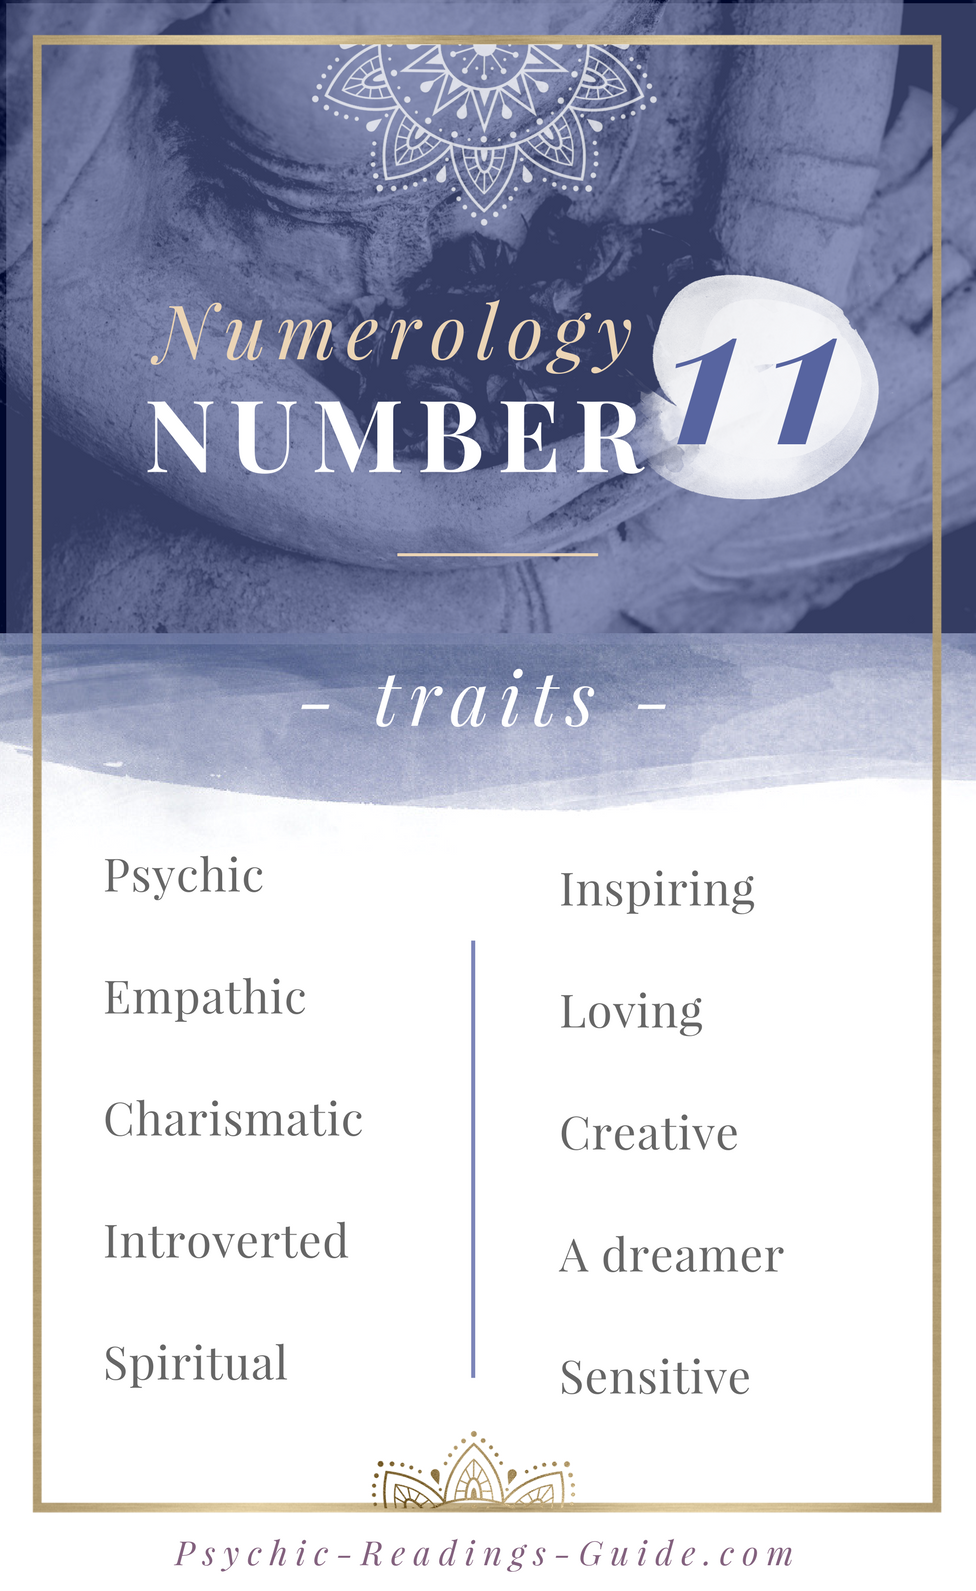 Master Numerology Number 11 - Traits and Life Purpose